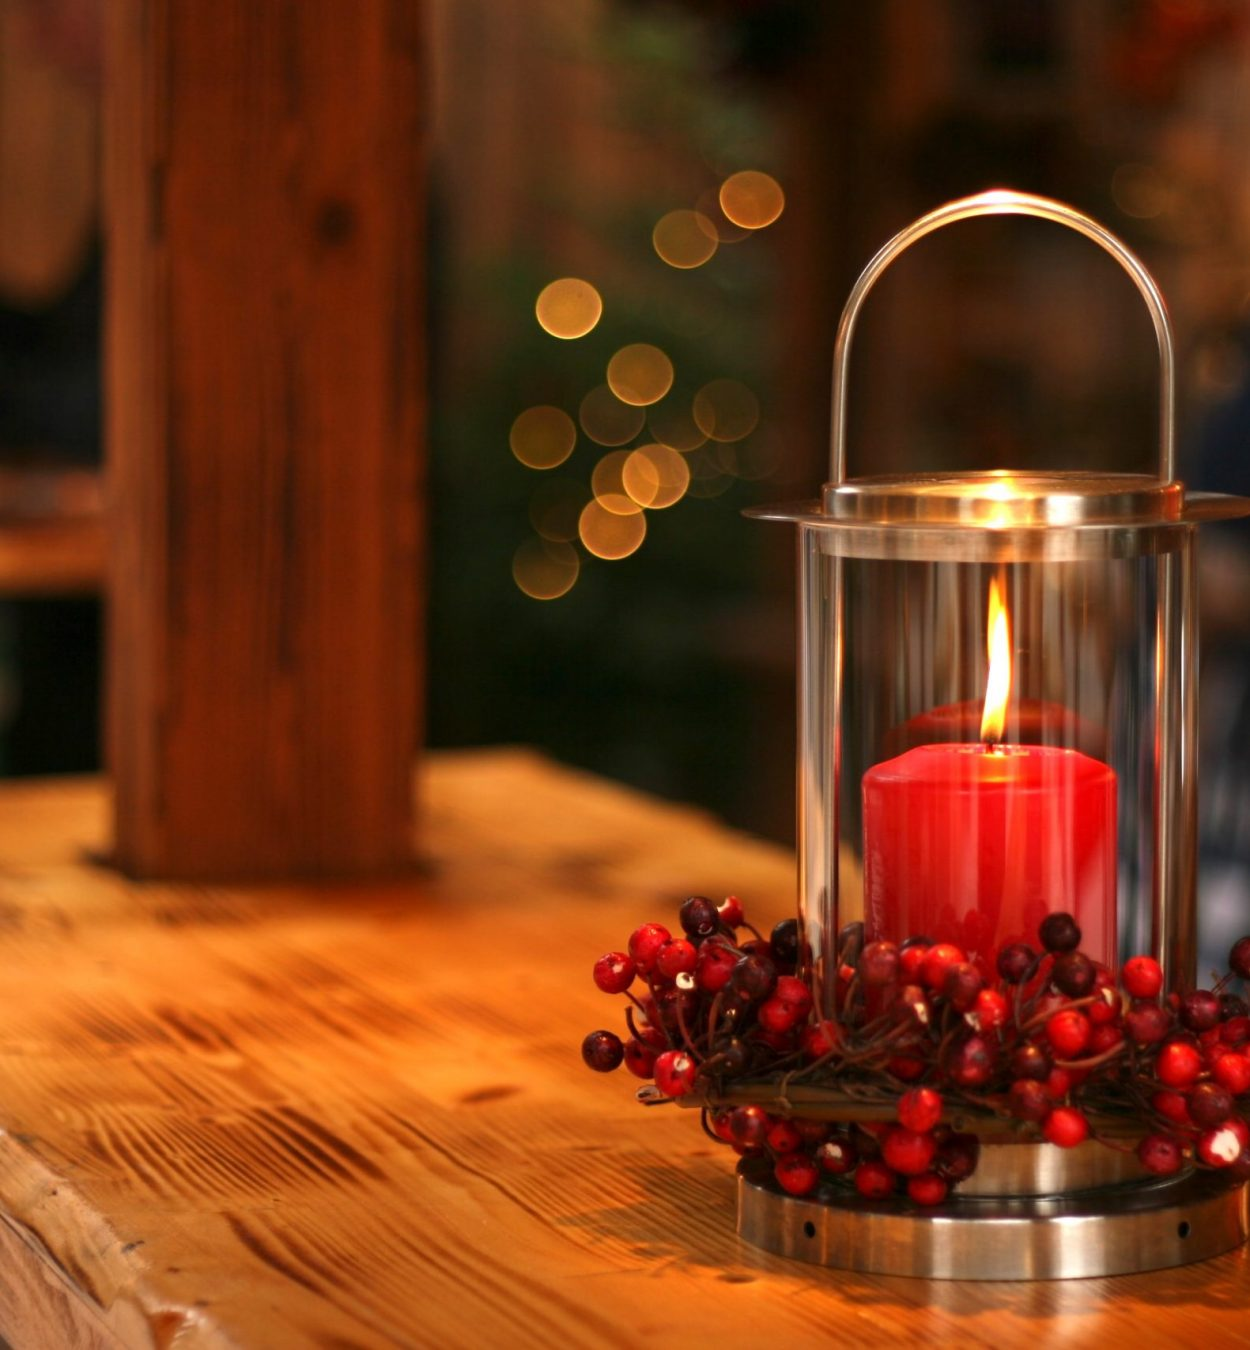 Single Red Candle with Berries